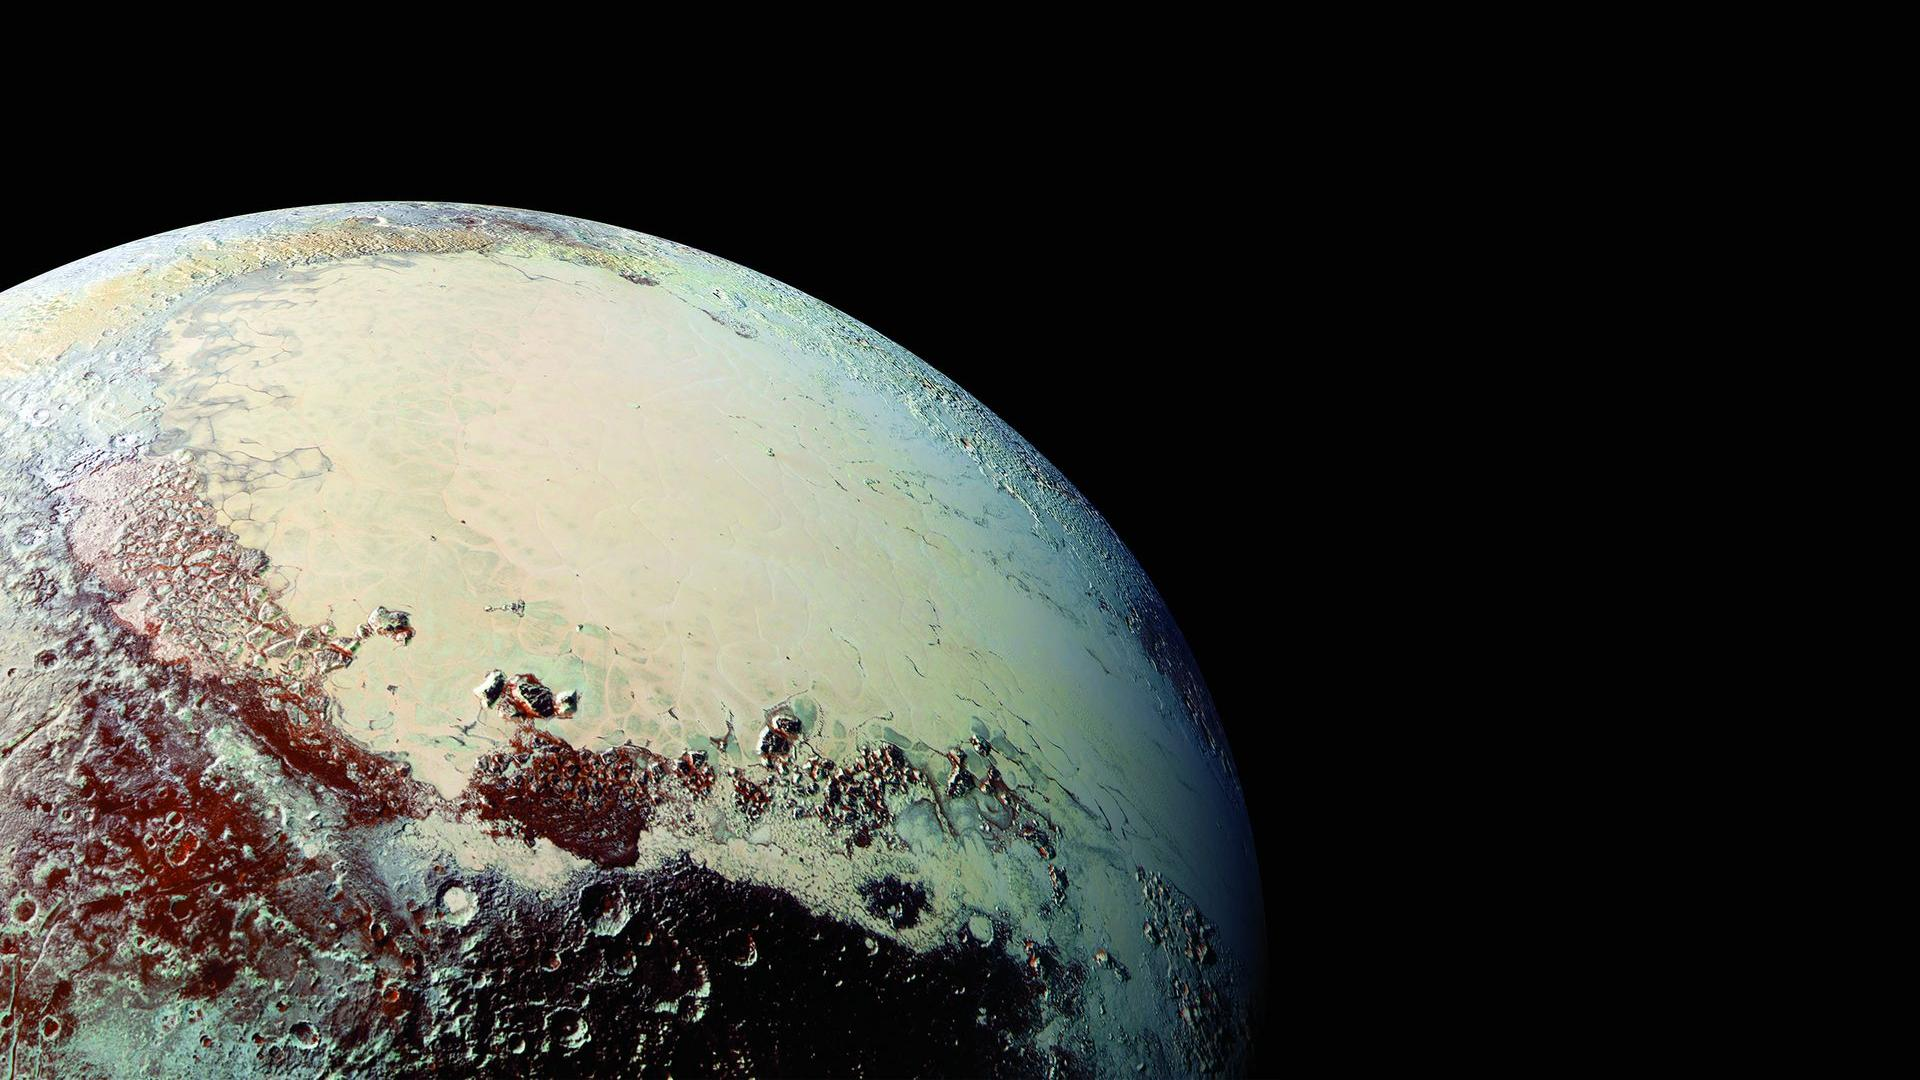 Here-s-the-recently-released-image-of-Pluto-from-km-in-desktop-background-form-1920-x-1080-wallpaper-wp3406843